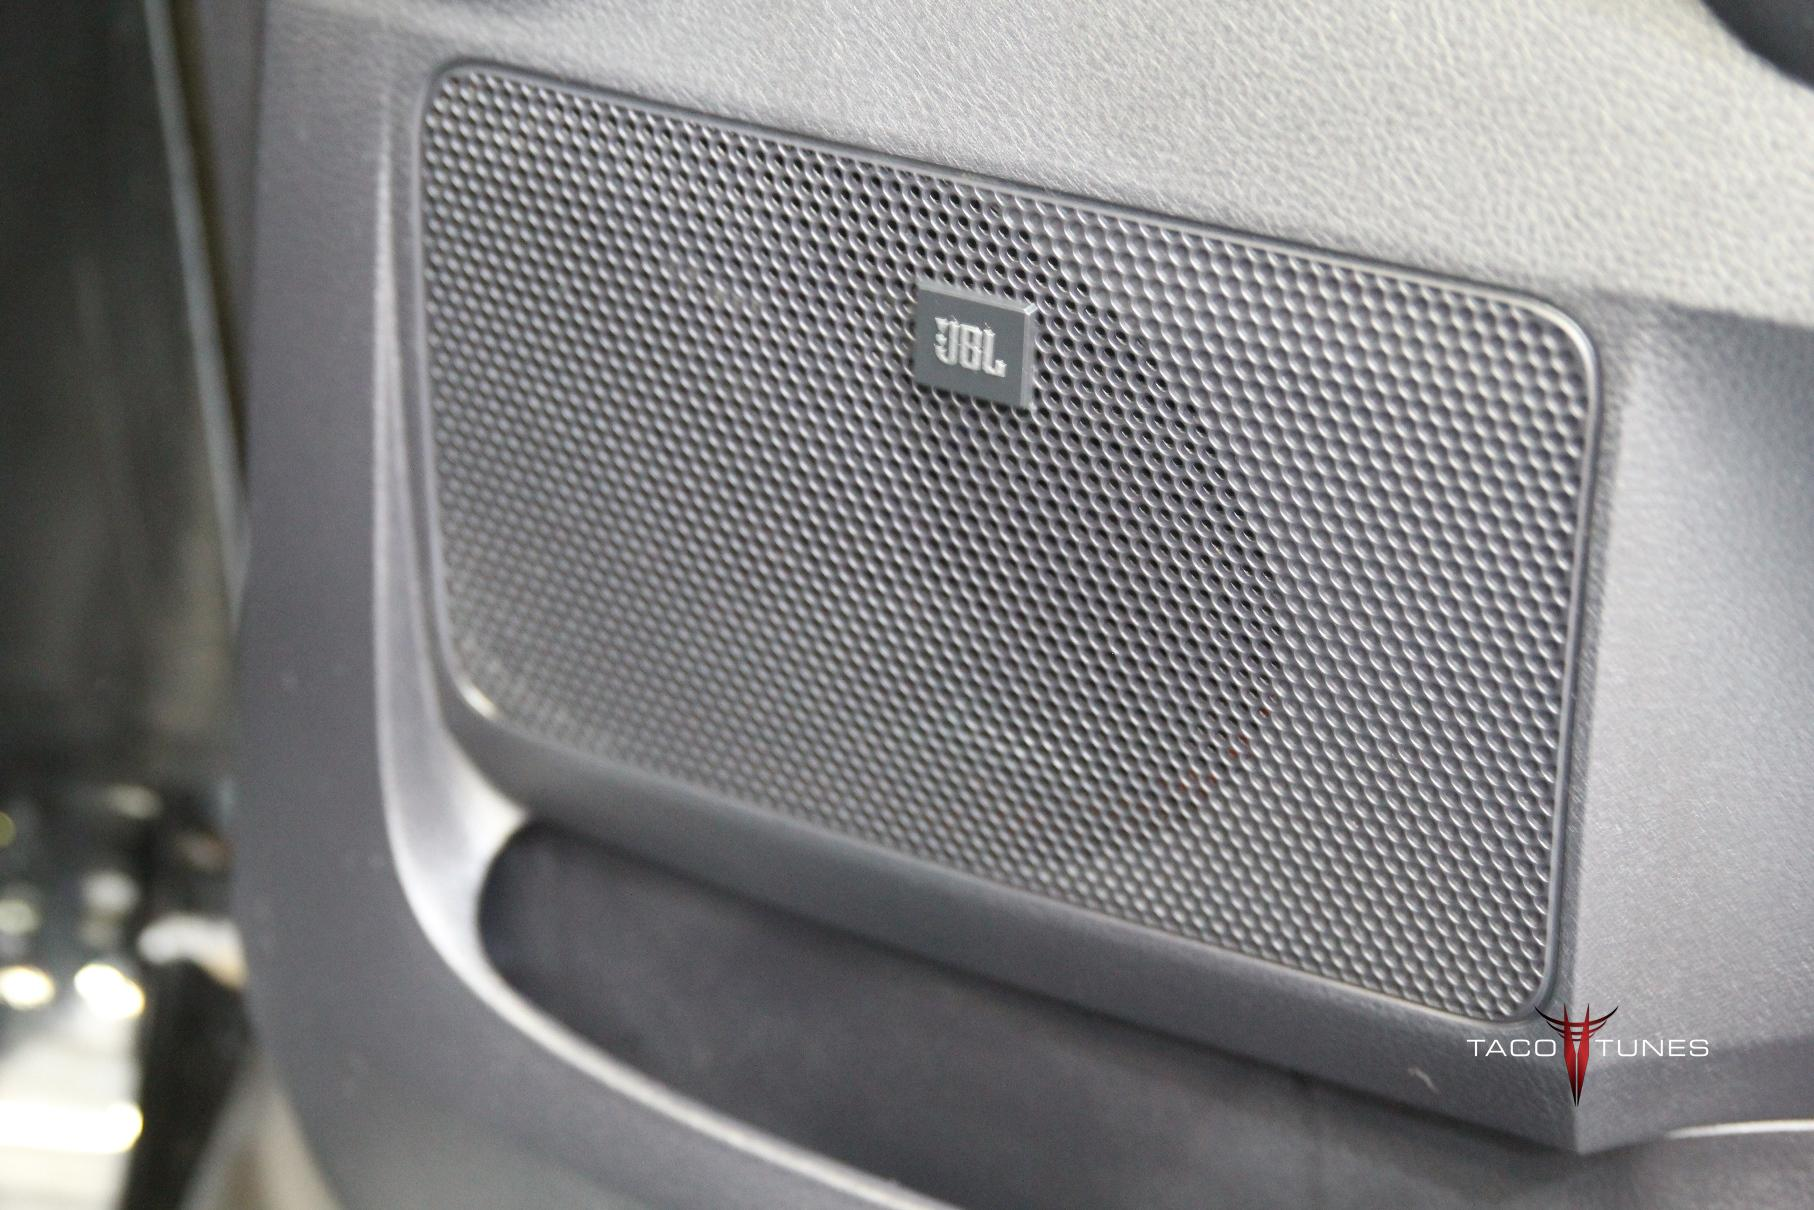 2014+ Toyota Tundra CrewMax Stock JBL Stereo System Pictures Details - Taco Tunes - Toyota Audio